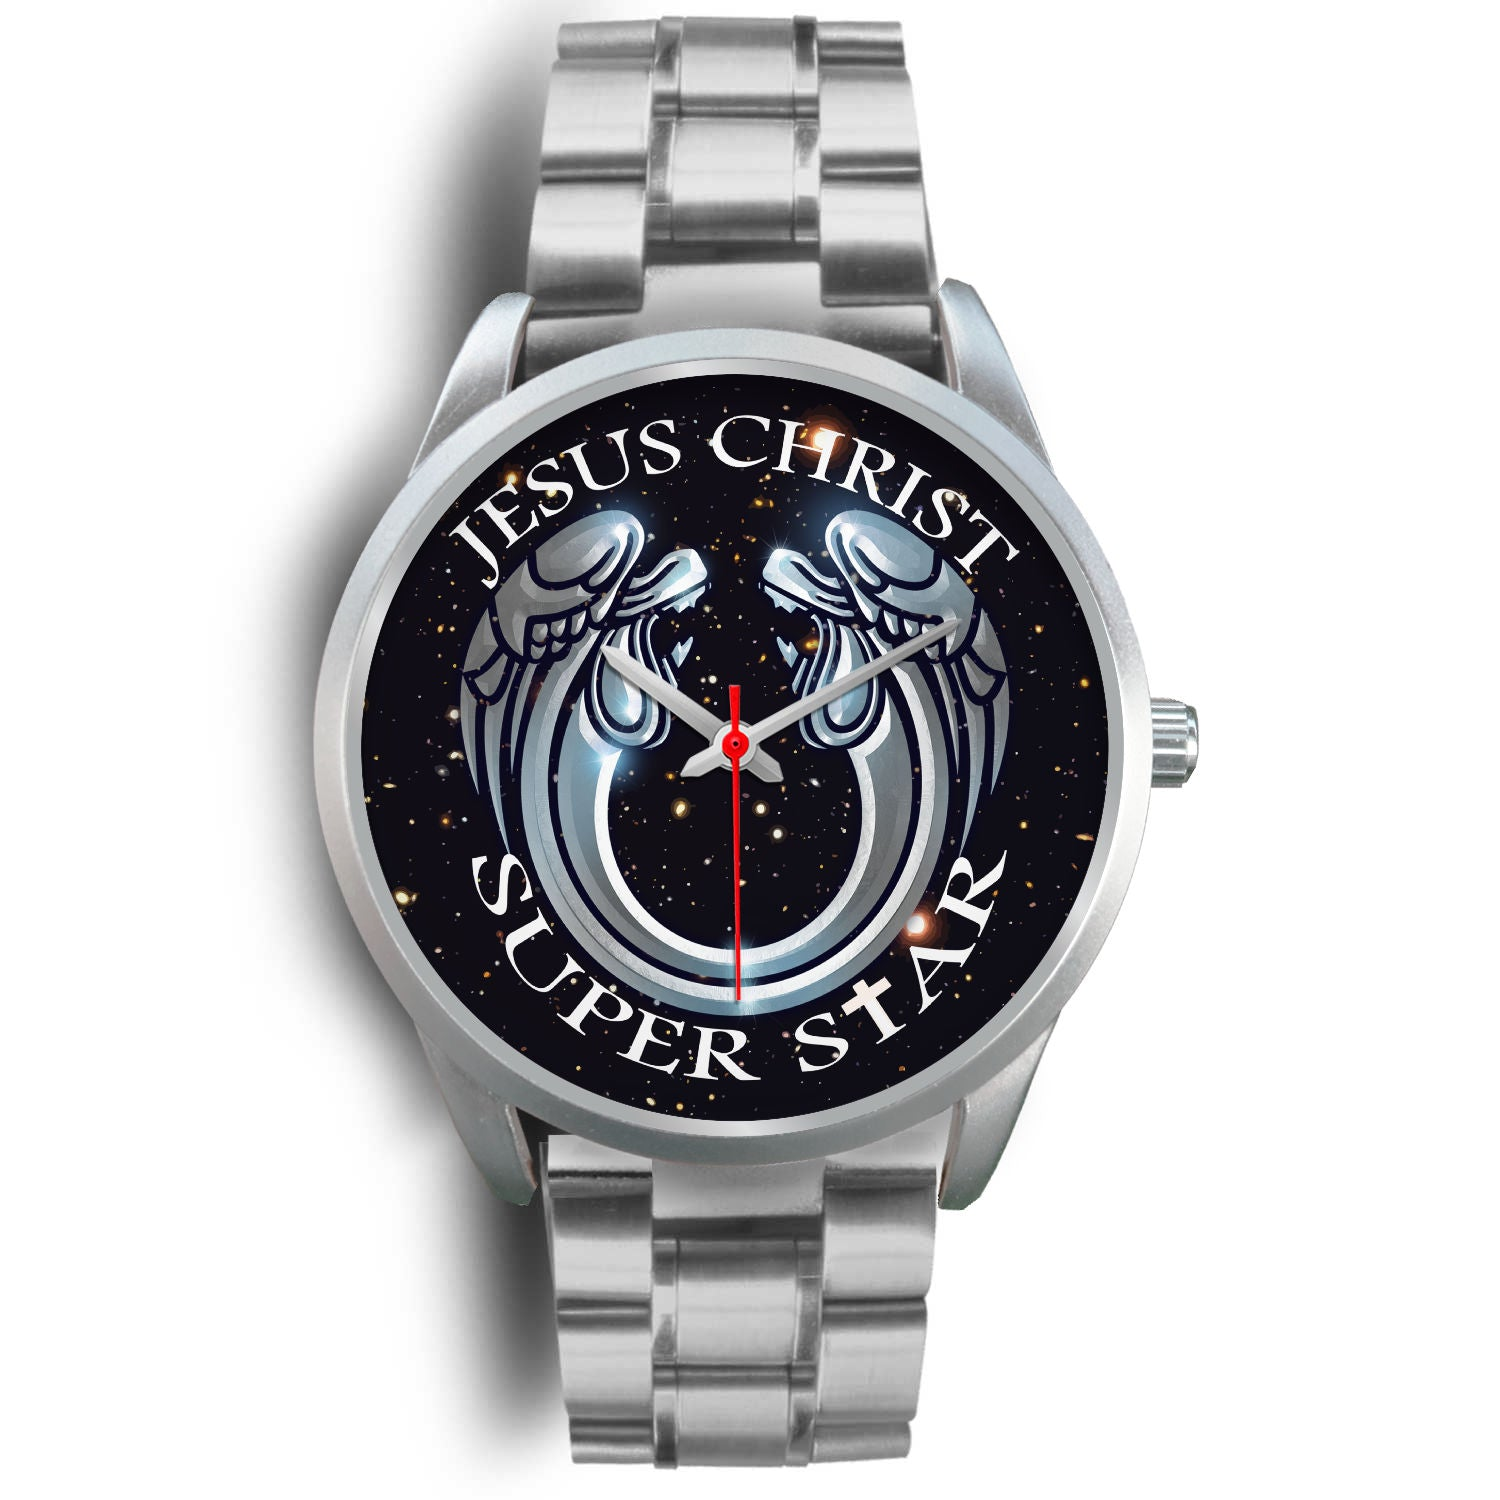 VIRA Silver Stainless Steel Watch For Jesus Christ Lovers